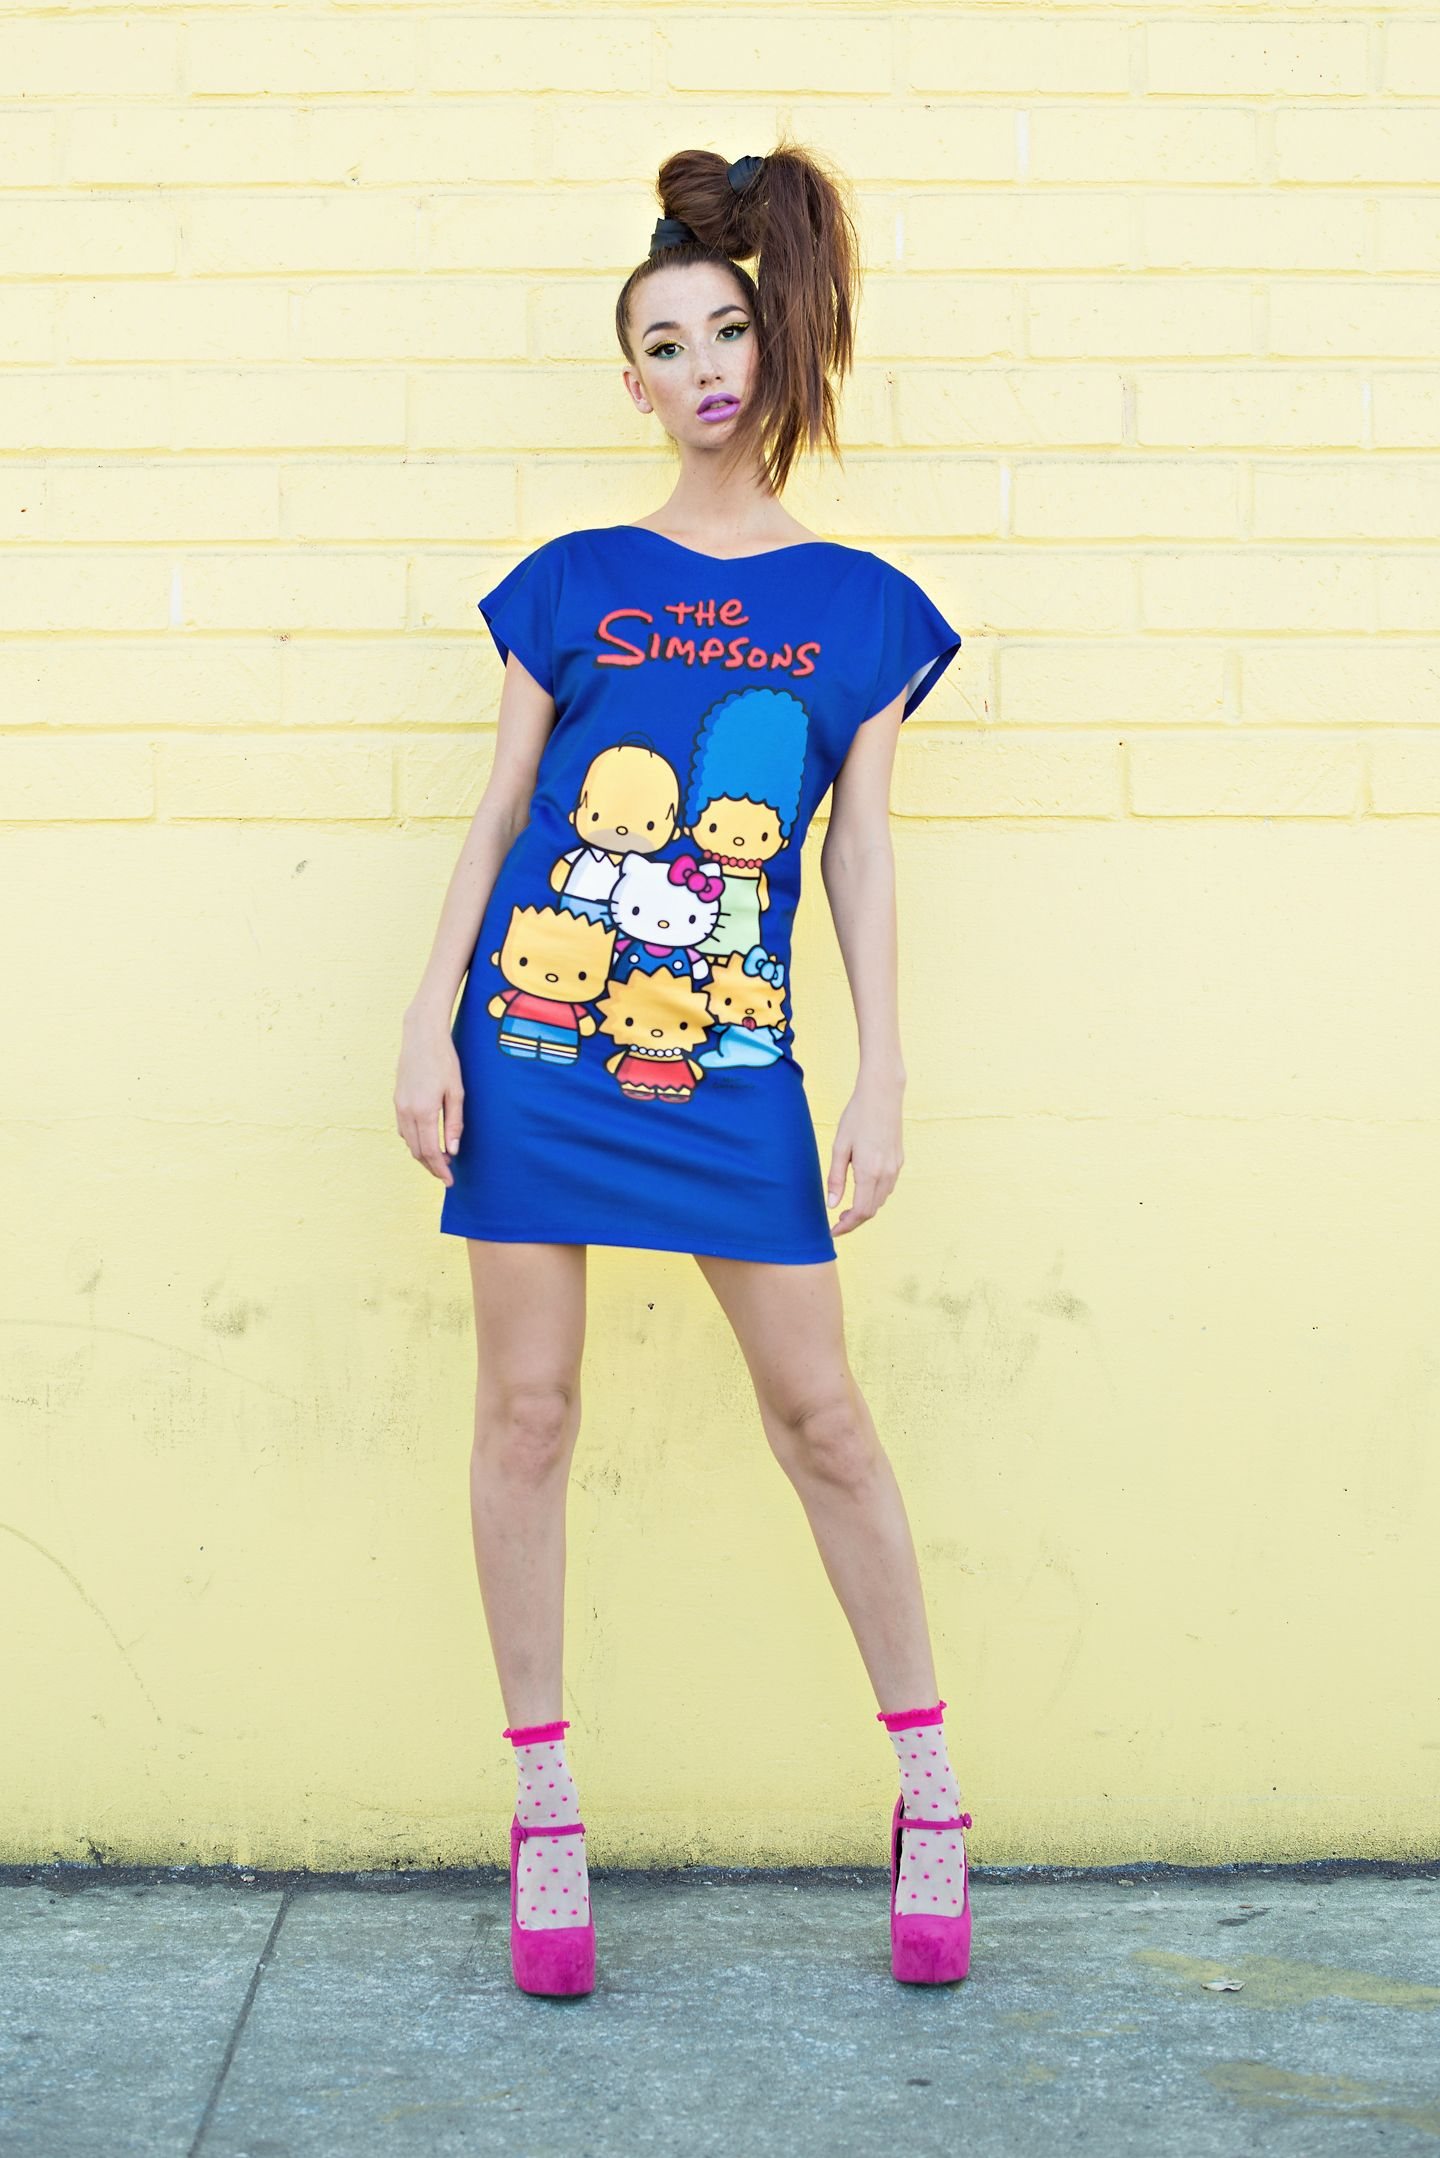 c51246359 The Simpsons x Hello Kitty Collection by JapanLA Clothing: The Family Tunic  Dress. Available at Sanrio.com, Modcloth.com DollsKill.com, ShopJeen.com!